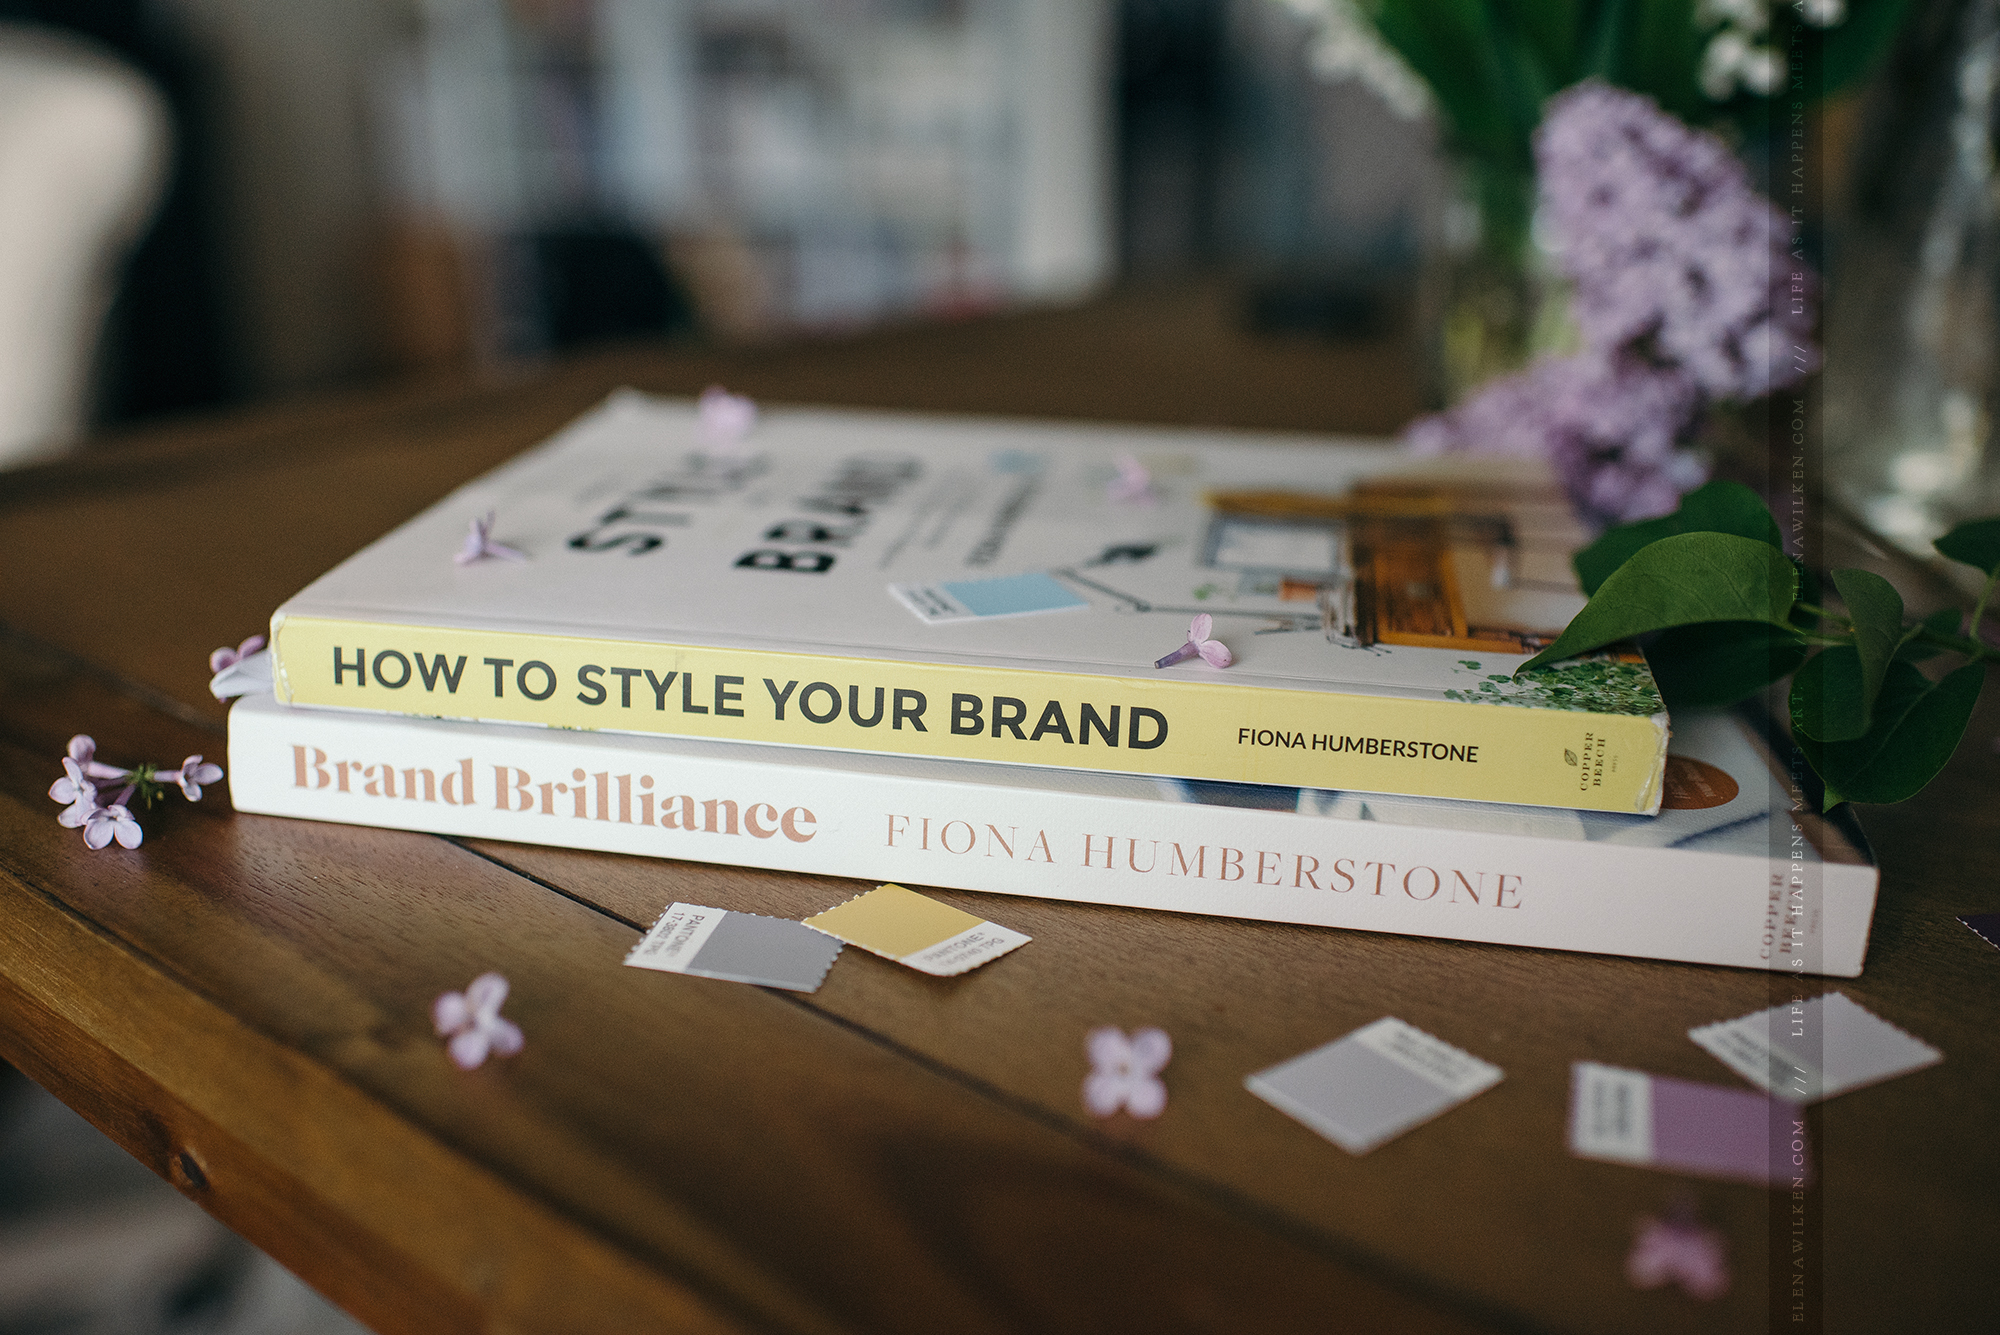 brand-brilliance-how-to-style-your-brand-branding-ew-couture.jpg